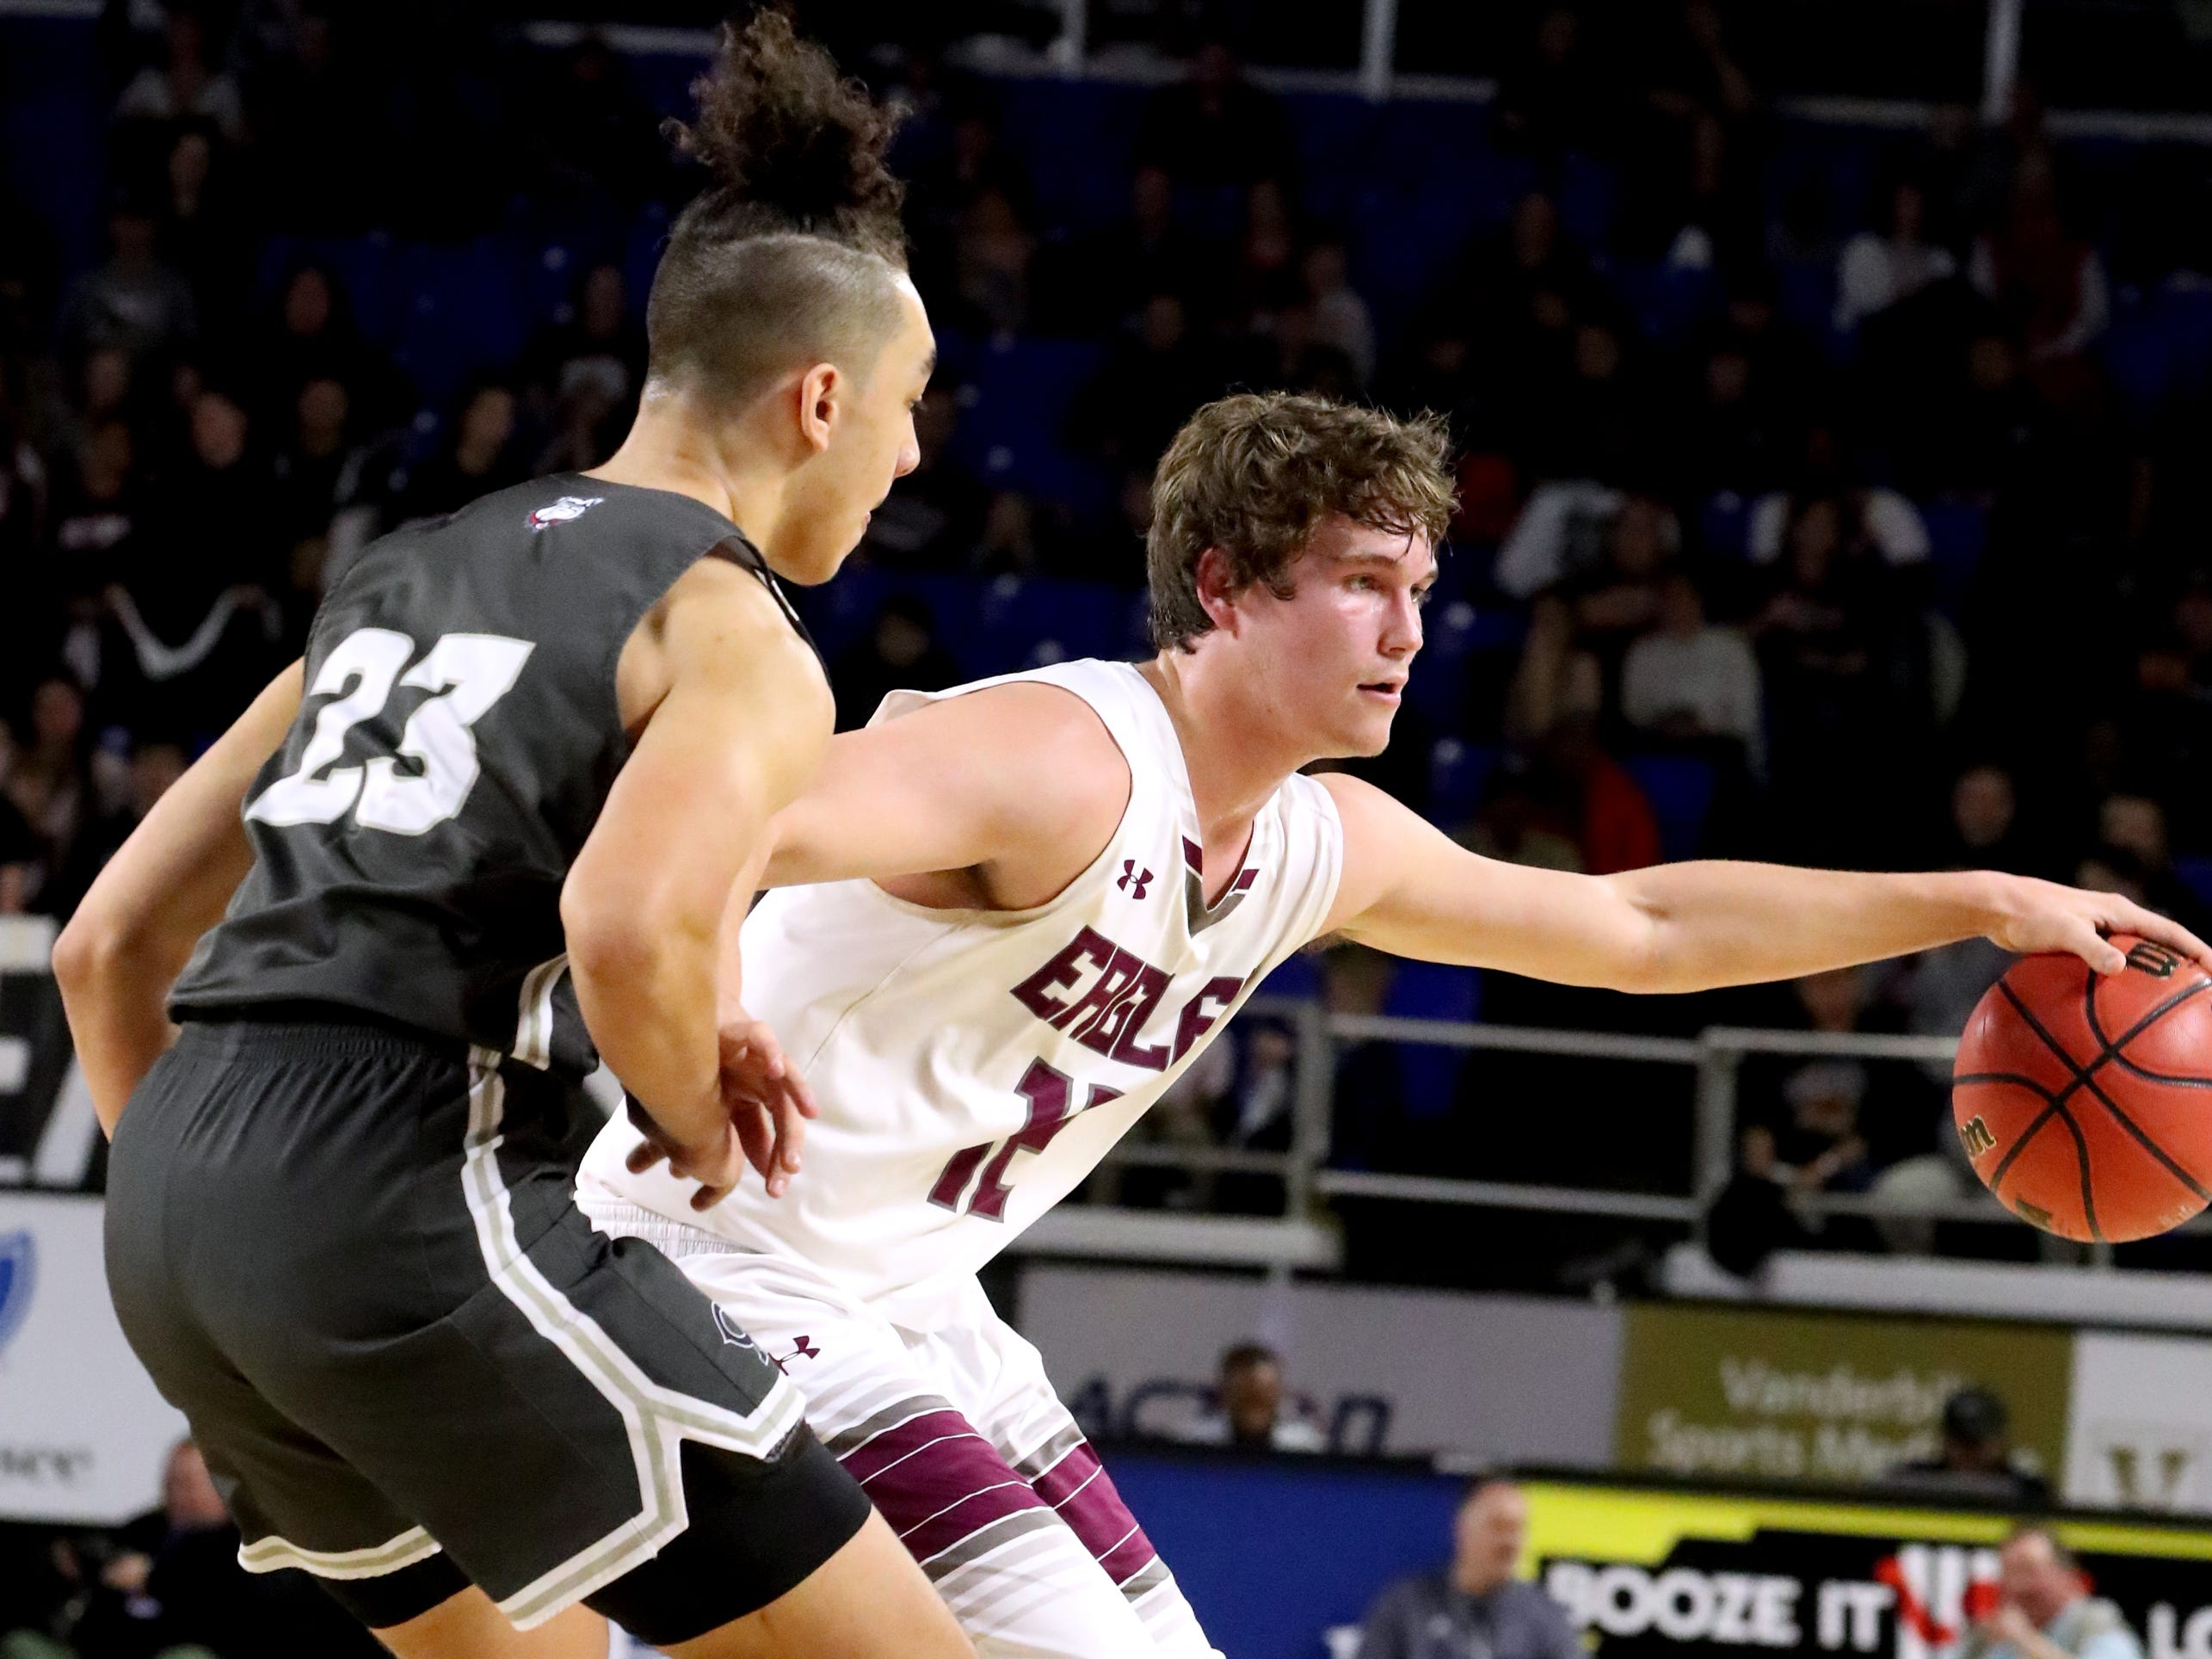 Eagleville's Ethan Cobb (12) moves the ball around he court as Columbia Academy's Gary Smith, Jr. (23) guards him during the semifinal round of the TSSAA Class A Boys State Tournament, on Thursday, March 15, 2019, at Murphy Center in Murfreesboro, Tenn.